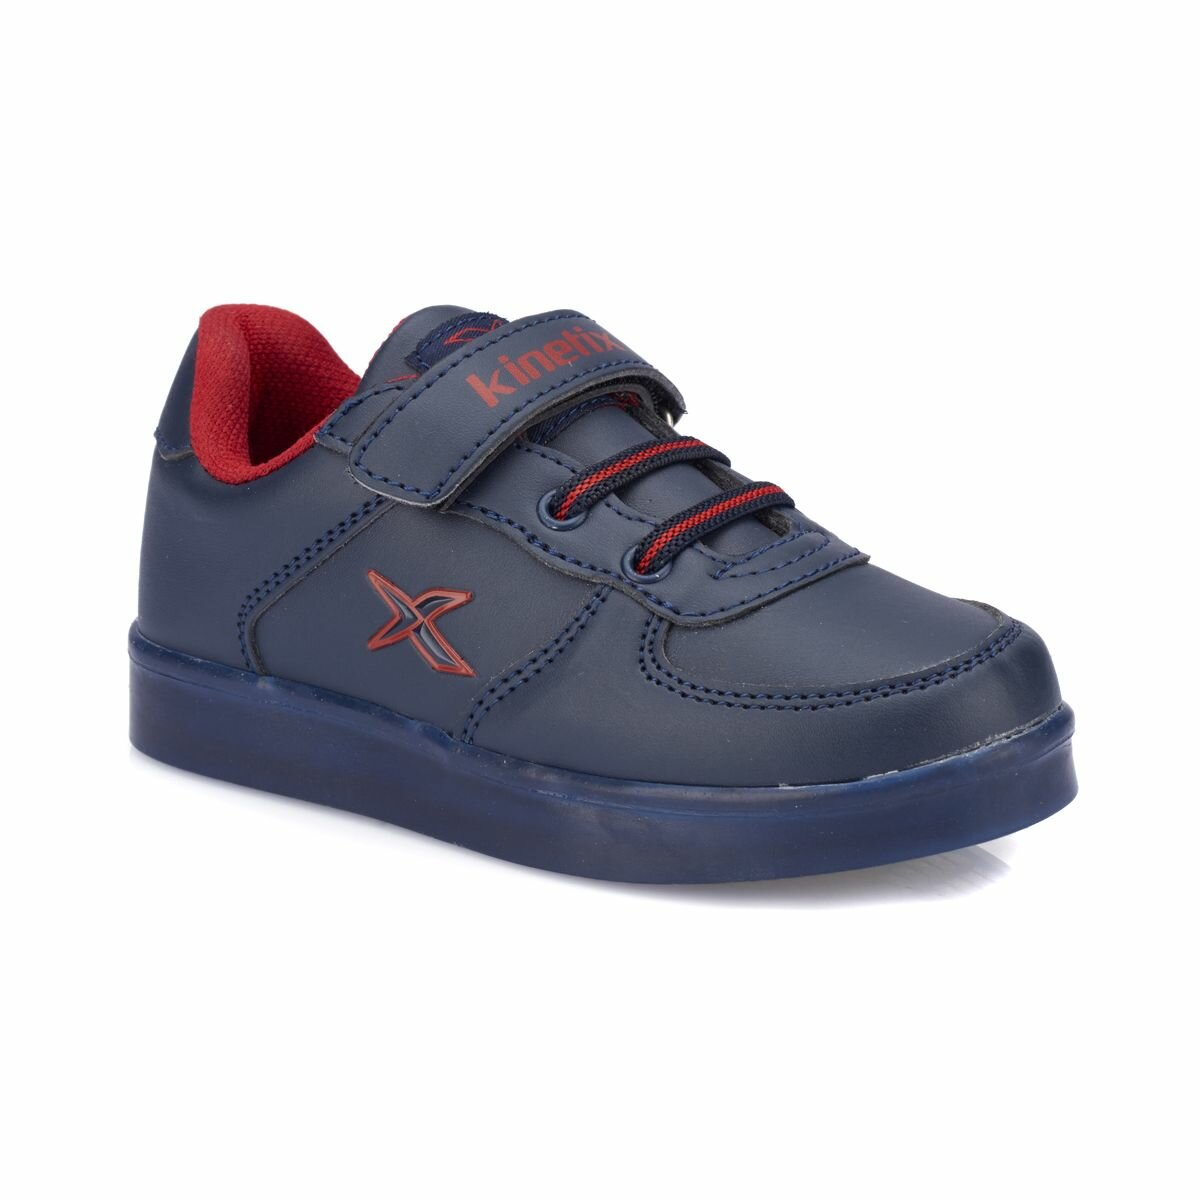 FLO FERGIE Navy Blue Male Child Sneaker Shoes KINETIX